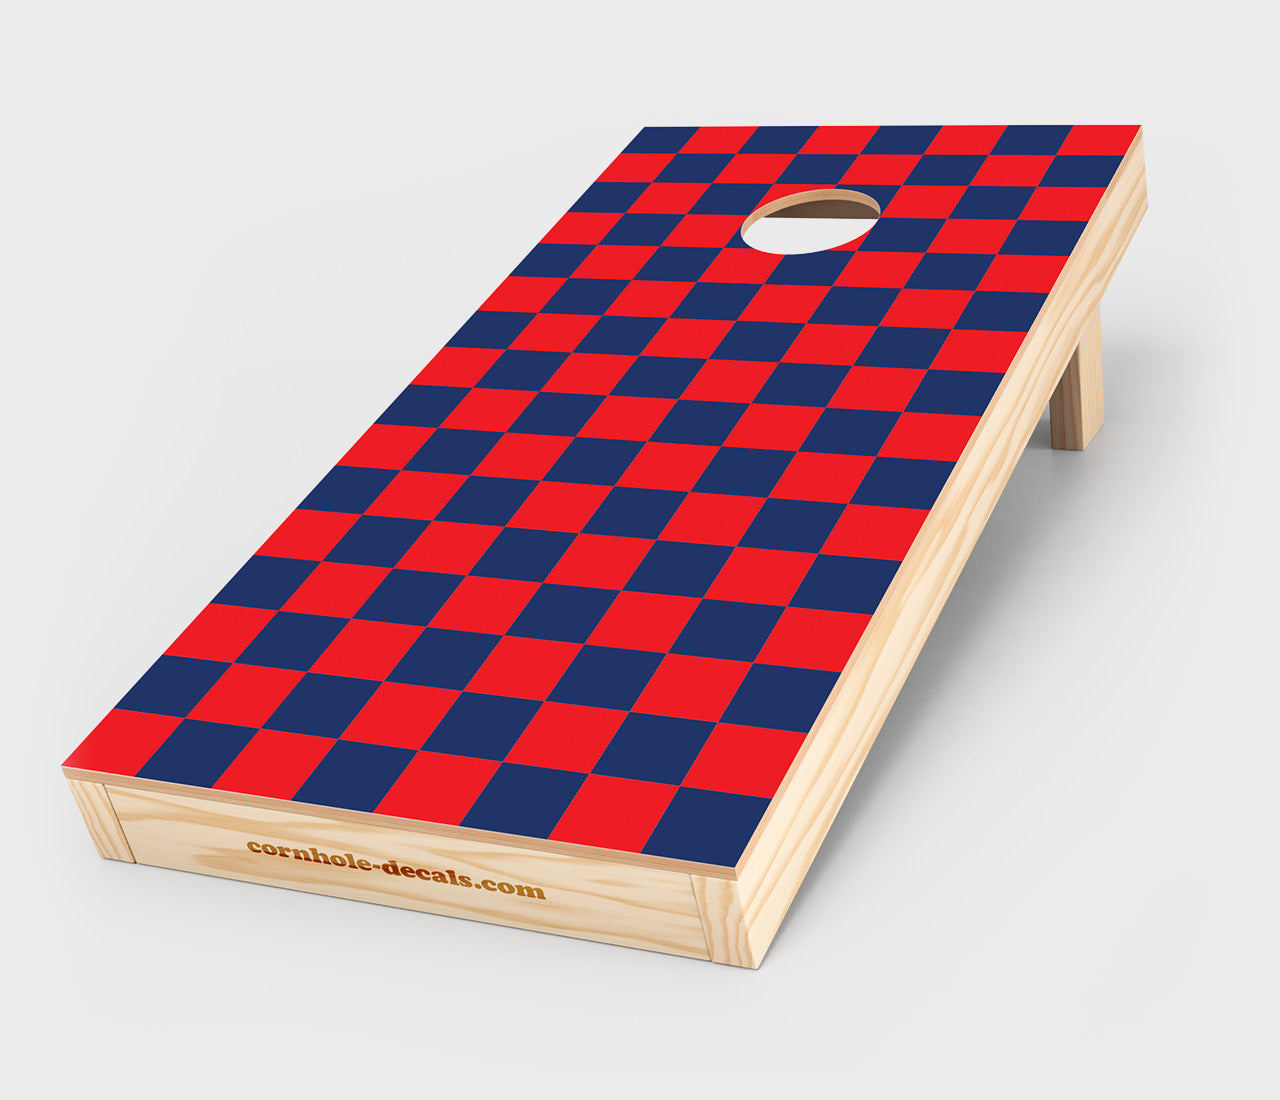 Chuggles Cornhole - Blue and Red Checkered Cornhole Decal